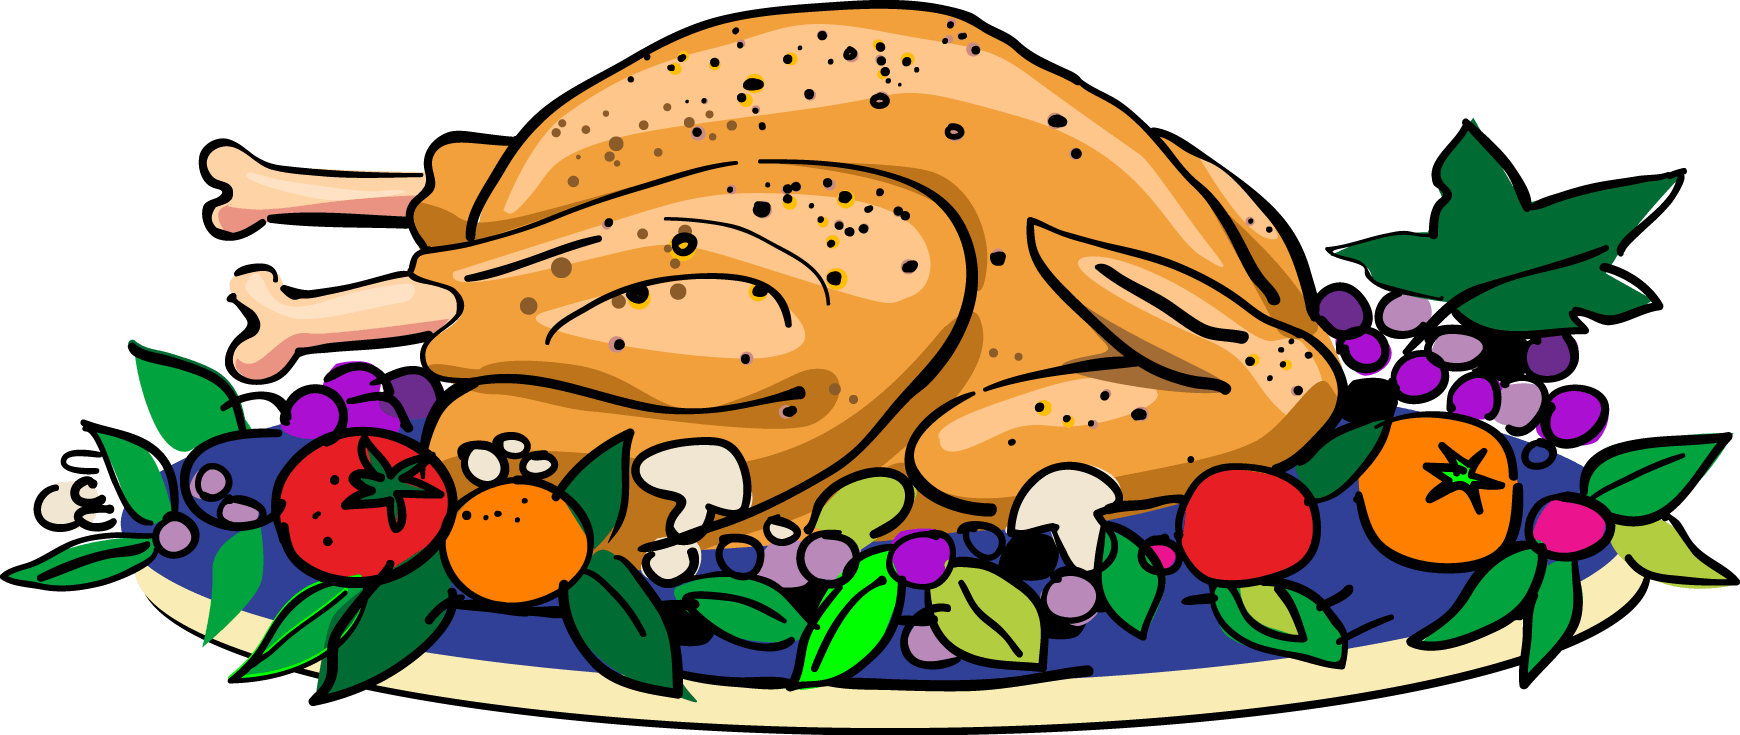 collection of drawing. Dinner clipart chicken vegetable